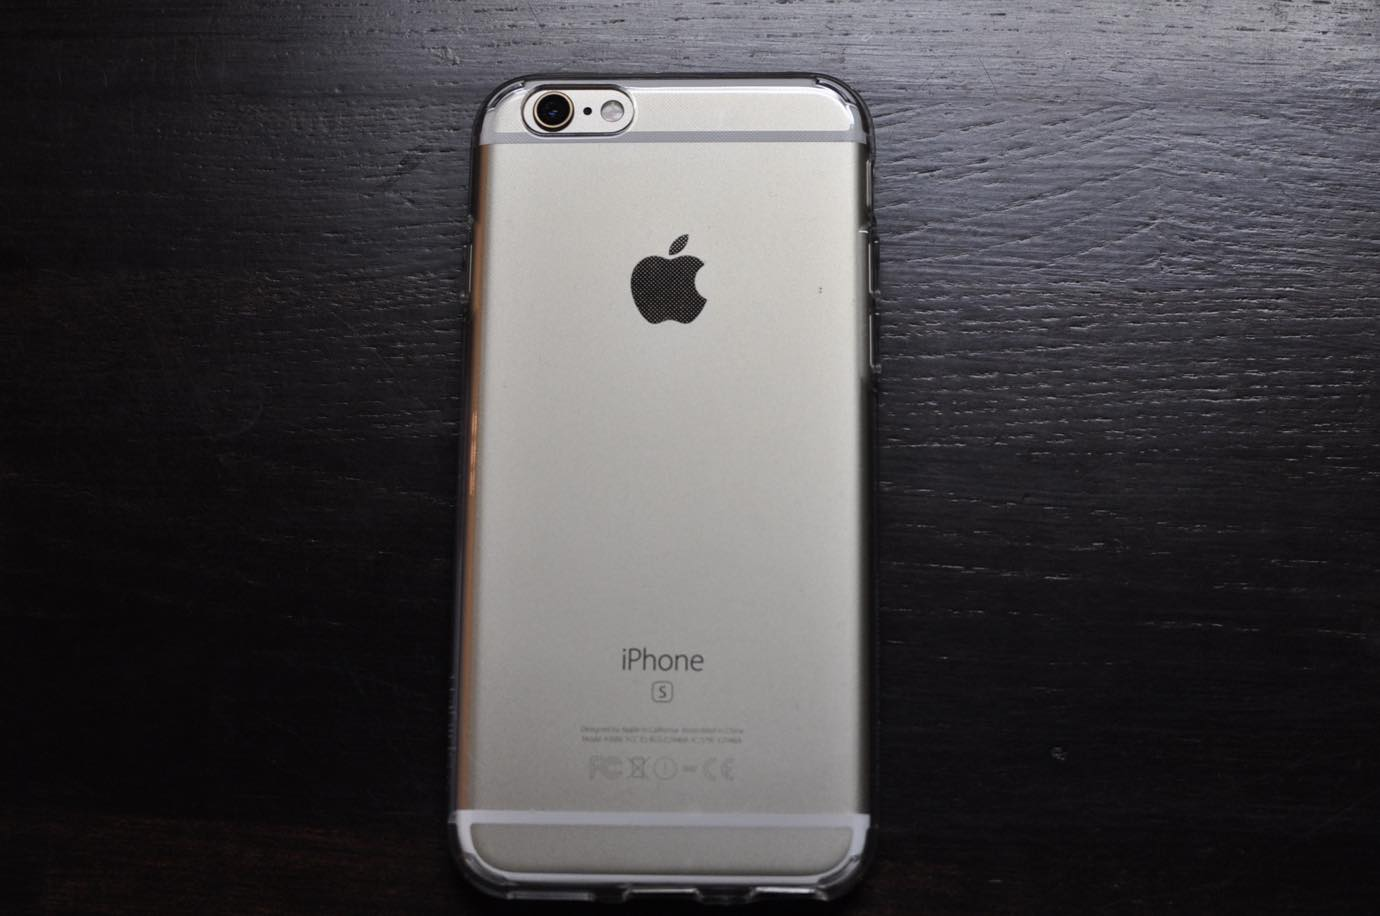 Spigen iPhone6S ケース 06 20151010 100648